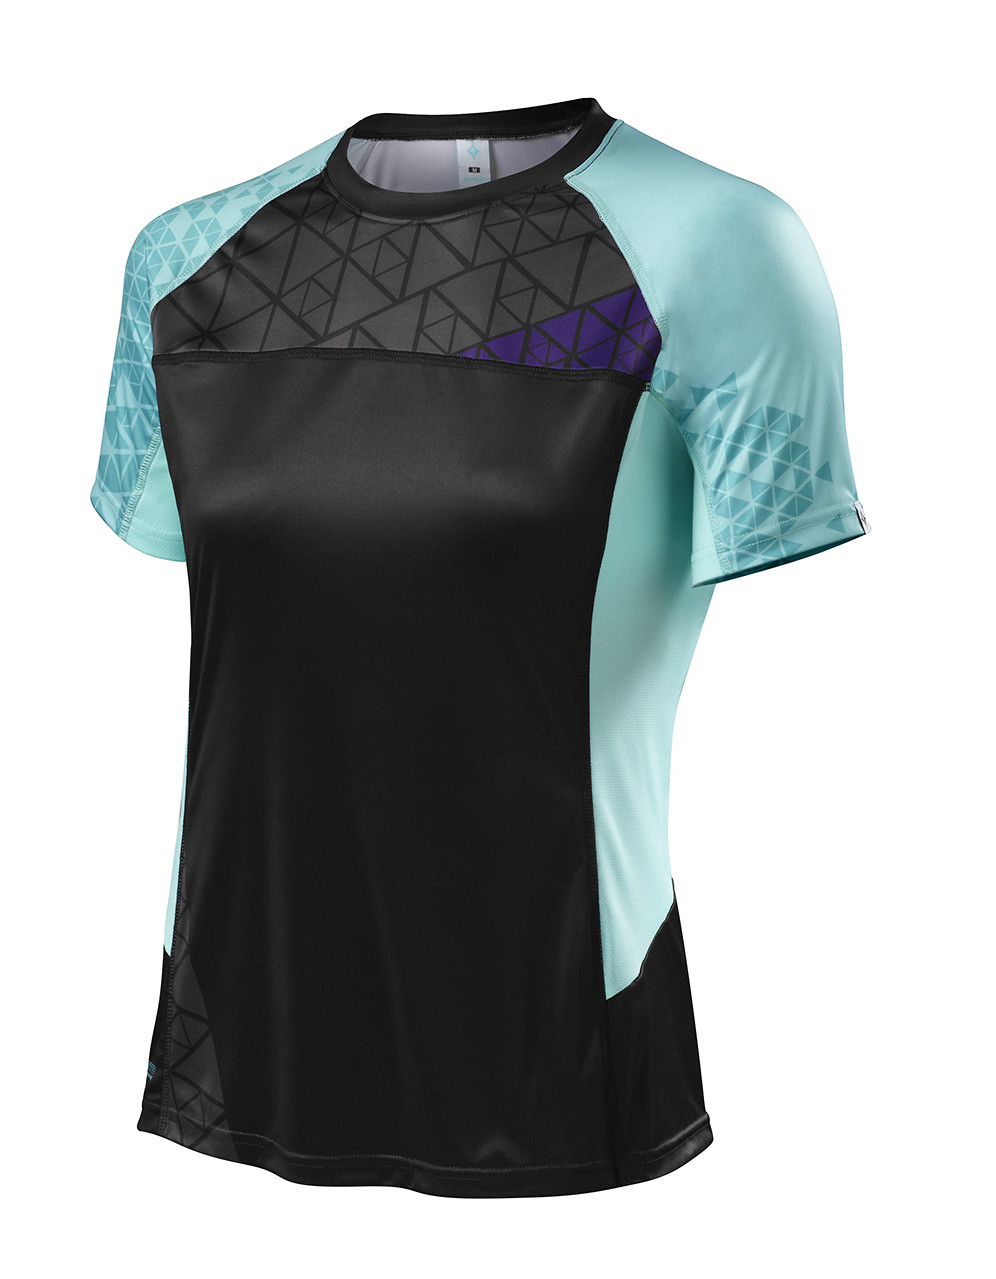 Specialized Women's Andorra Comp Jersey - Black:Light Teal